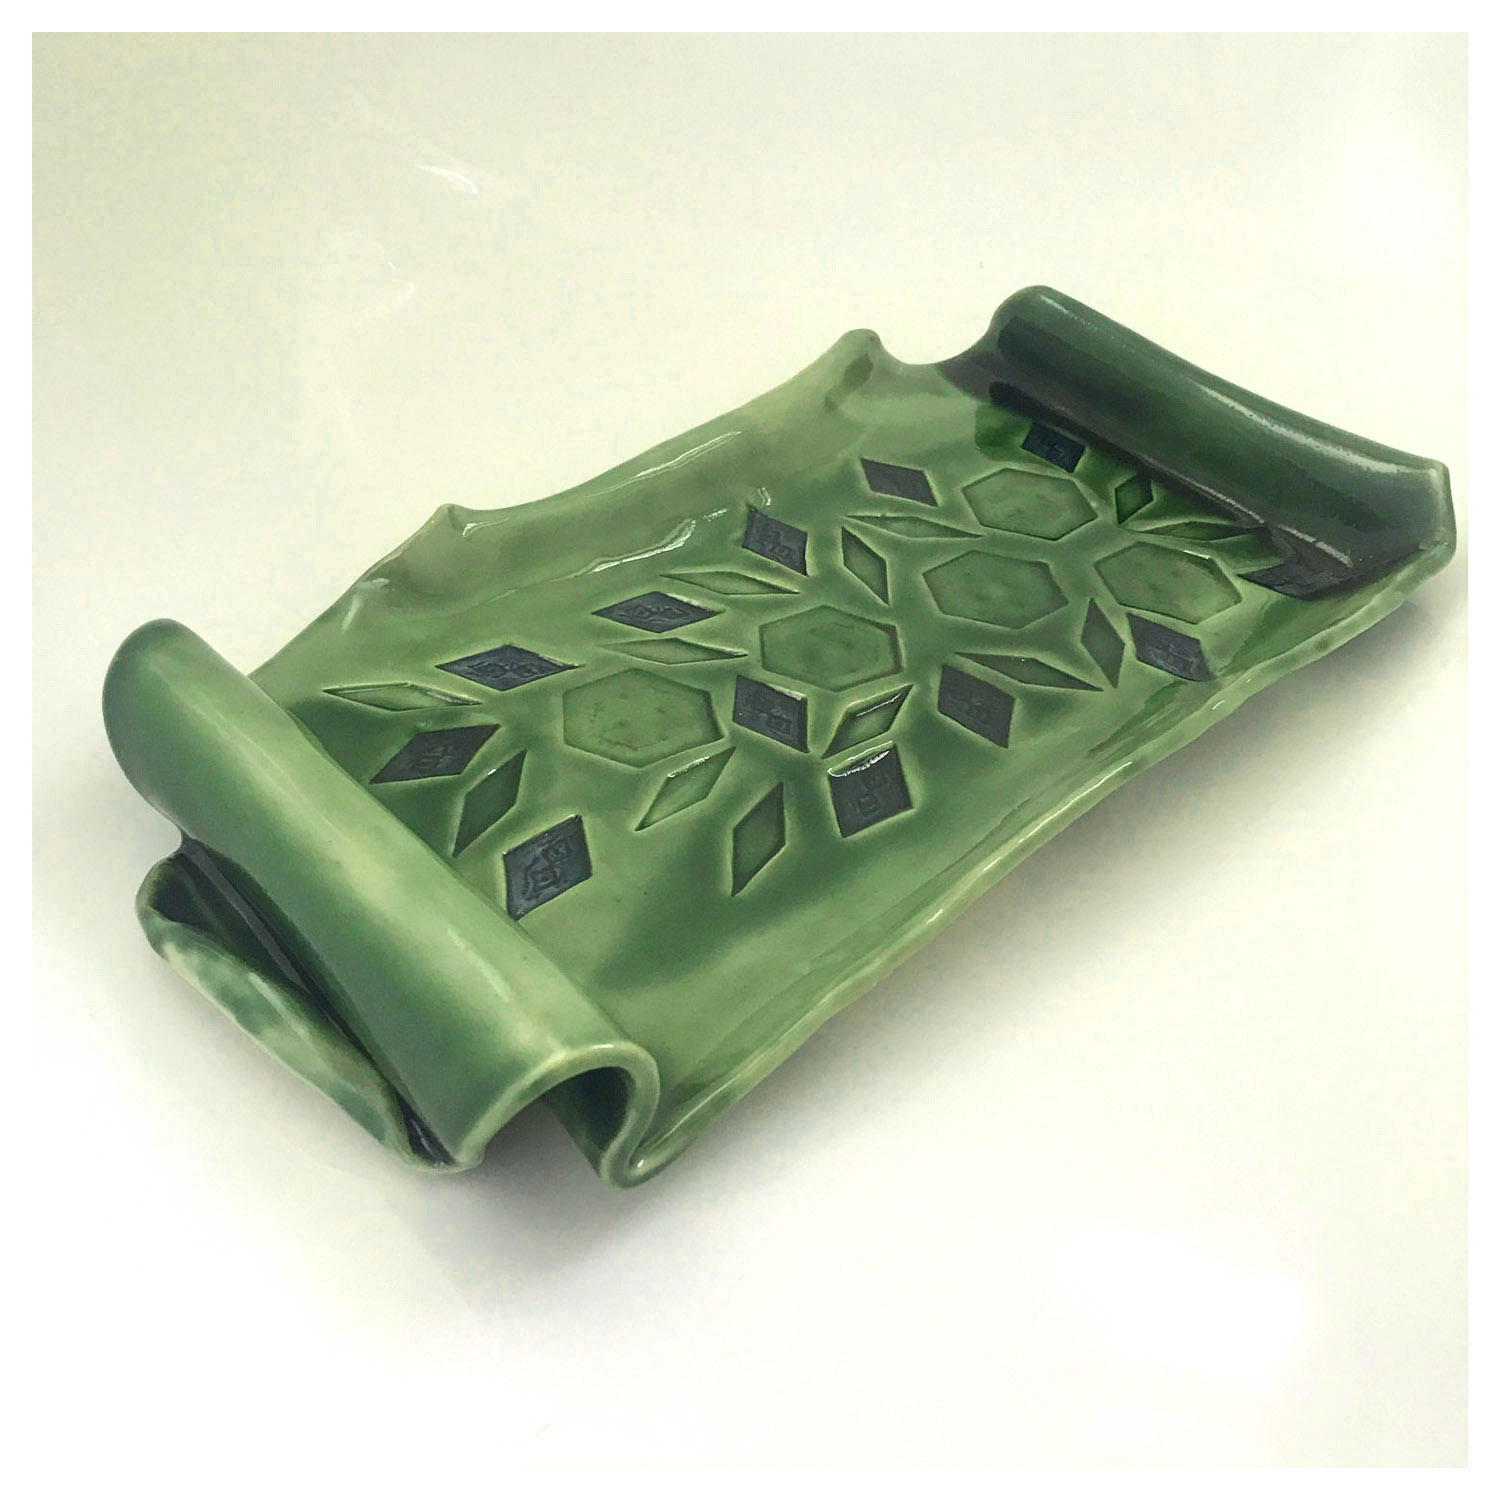 Nicole Lyster Green Ceramic Serving Plate Stoneware 350x230mm £50 This Shiny Green Glazed Ceramic Plate in the shape of a Scroll is for serving those Party Sandwiches and Cakes to set off your dining table with festive Fun